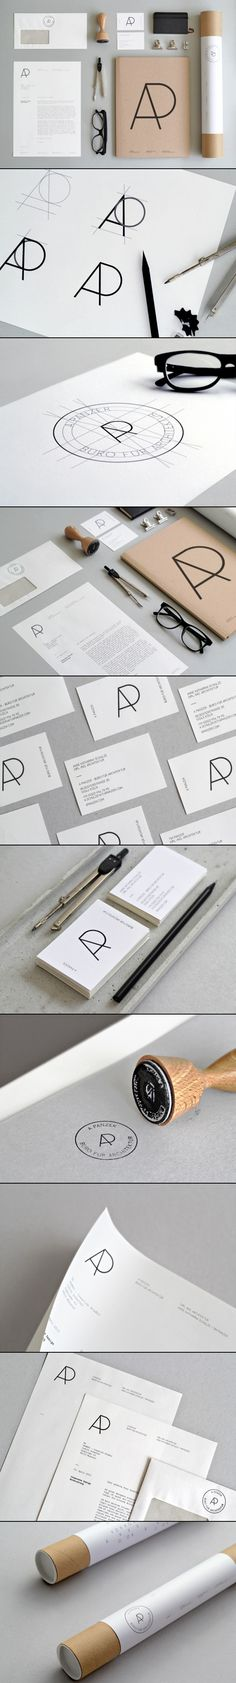 A Panzer, Büro für Architektur Brand Identity via Design made in Germany.